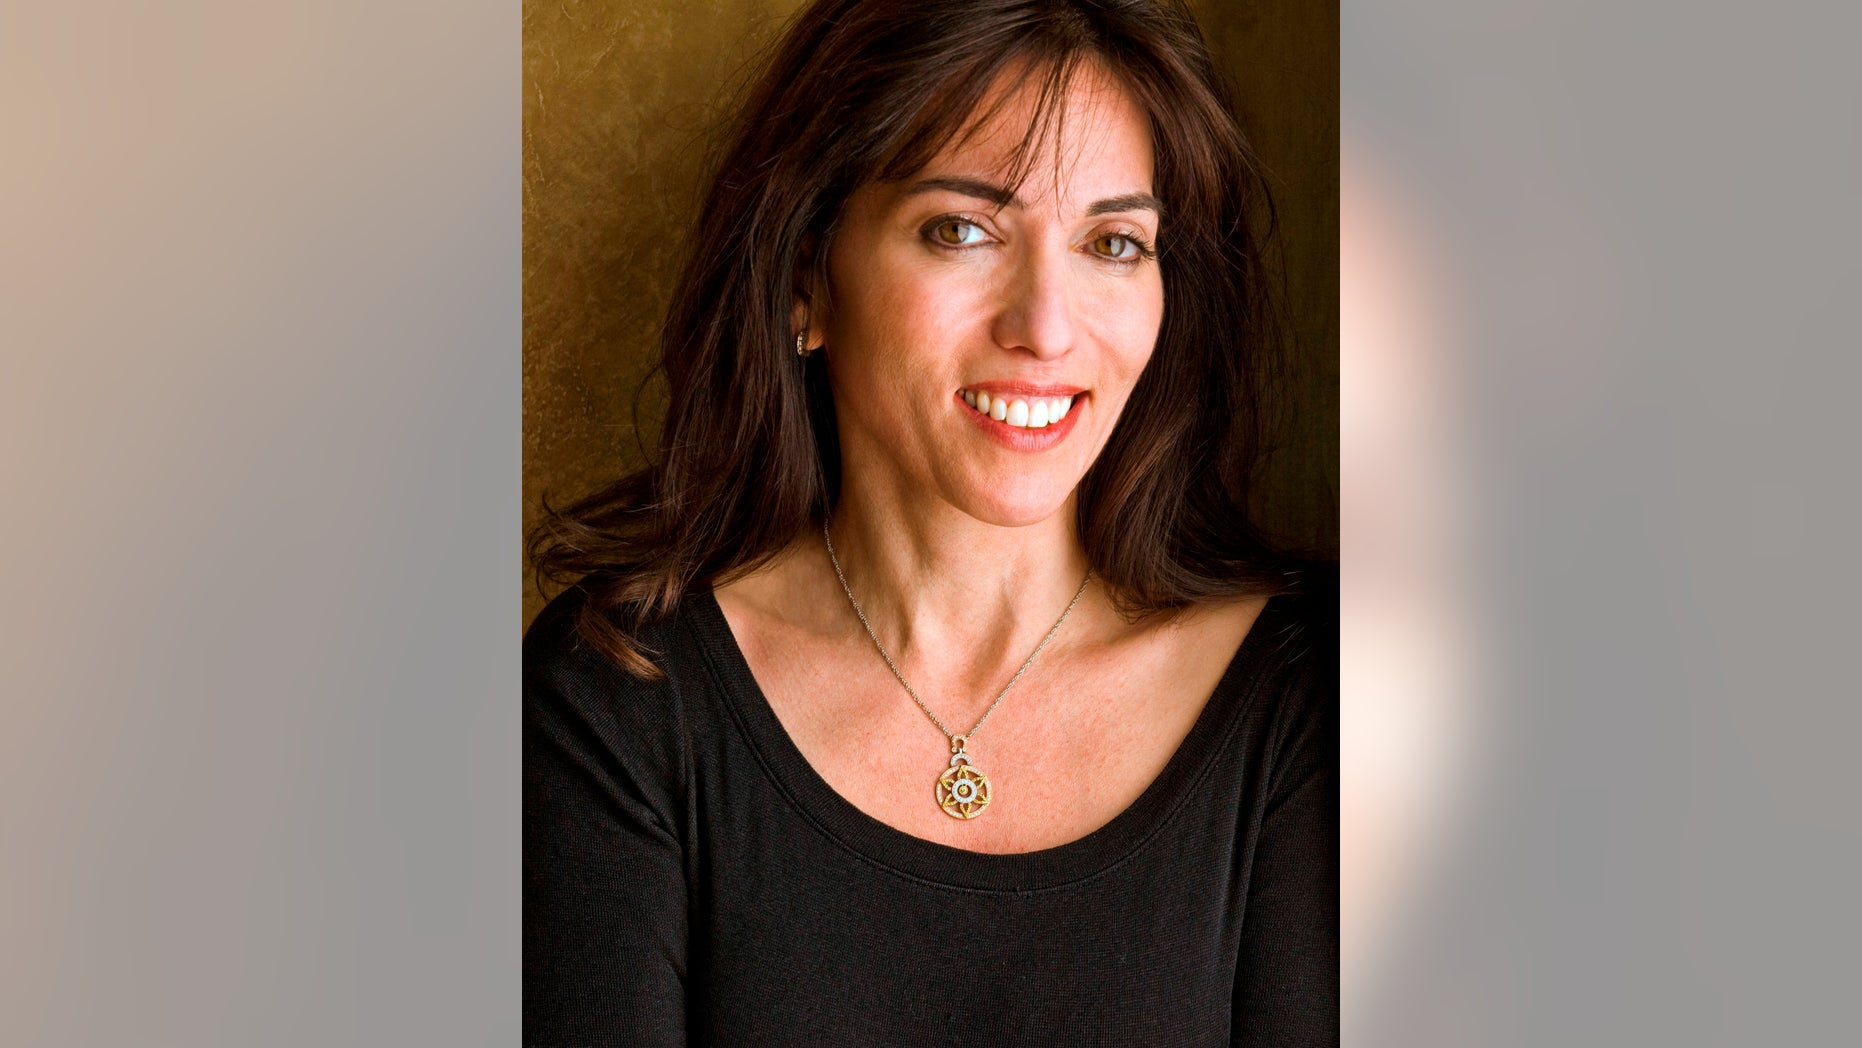 """This undated image released by United Talent Agency shows writer/director Audrey Wells. Wells, who wrote and directed the 2003 romantic comedy """"Under the Tuscan Sun,"""" has died after a five-year battle with cancer. A representative from United Talent Agency says Wells passed away Thursday, Oct. 4, 2018. She was 58."""